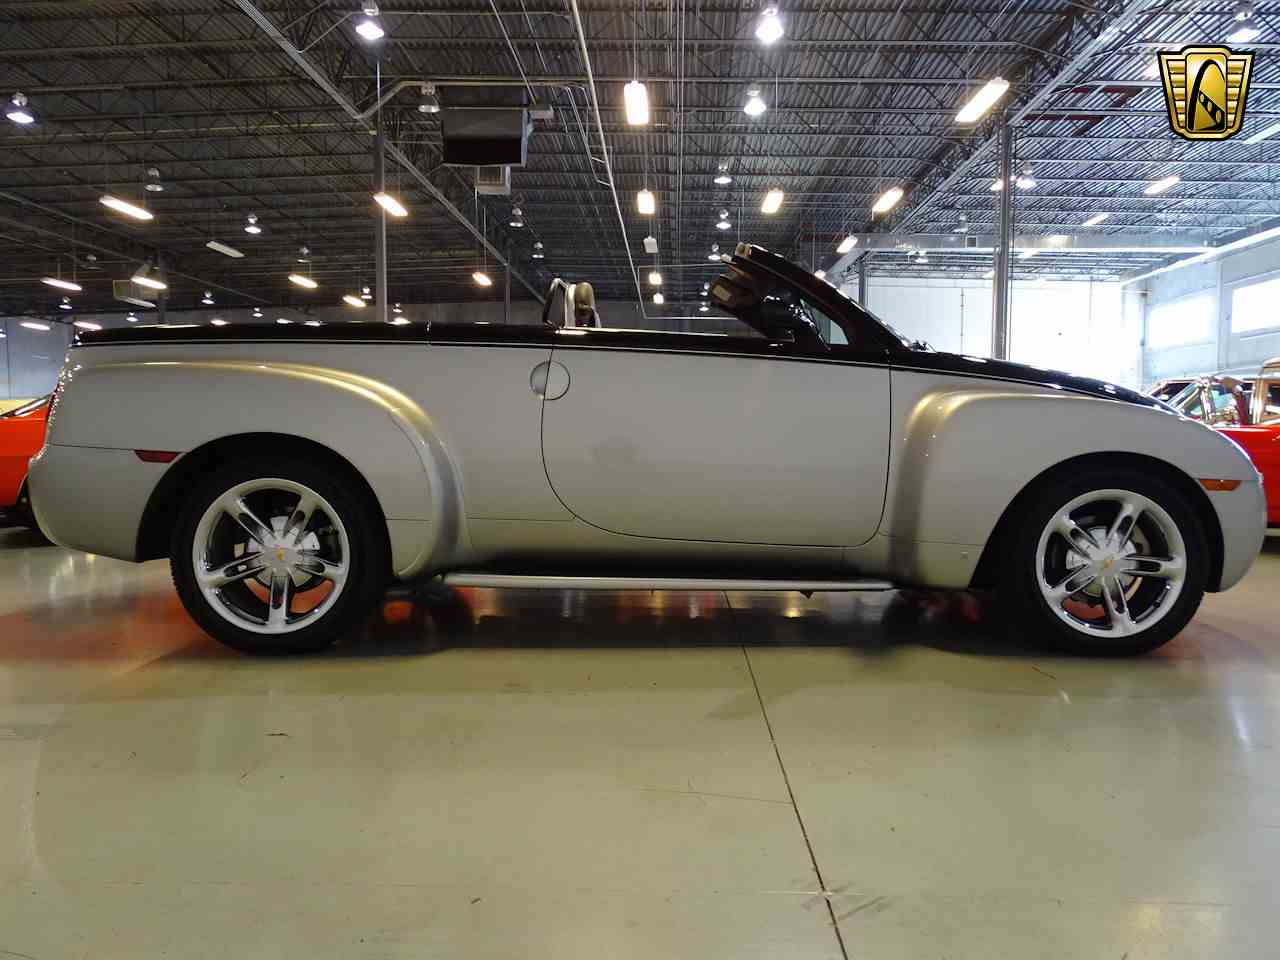 All Chevy 2006 chevrolet ssr for sale : 2006 Chevrolet SSR for Sale | ClassicCars.com | CC-1027488